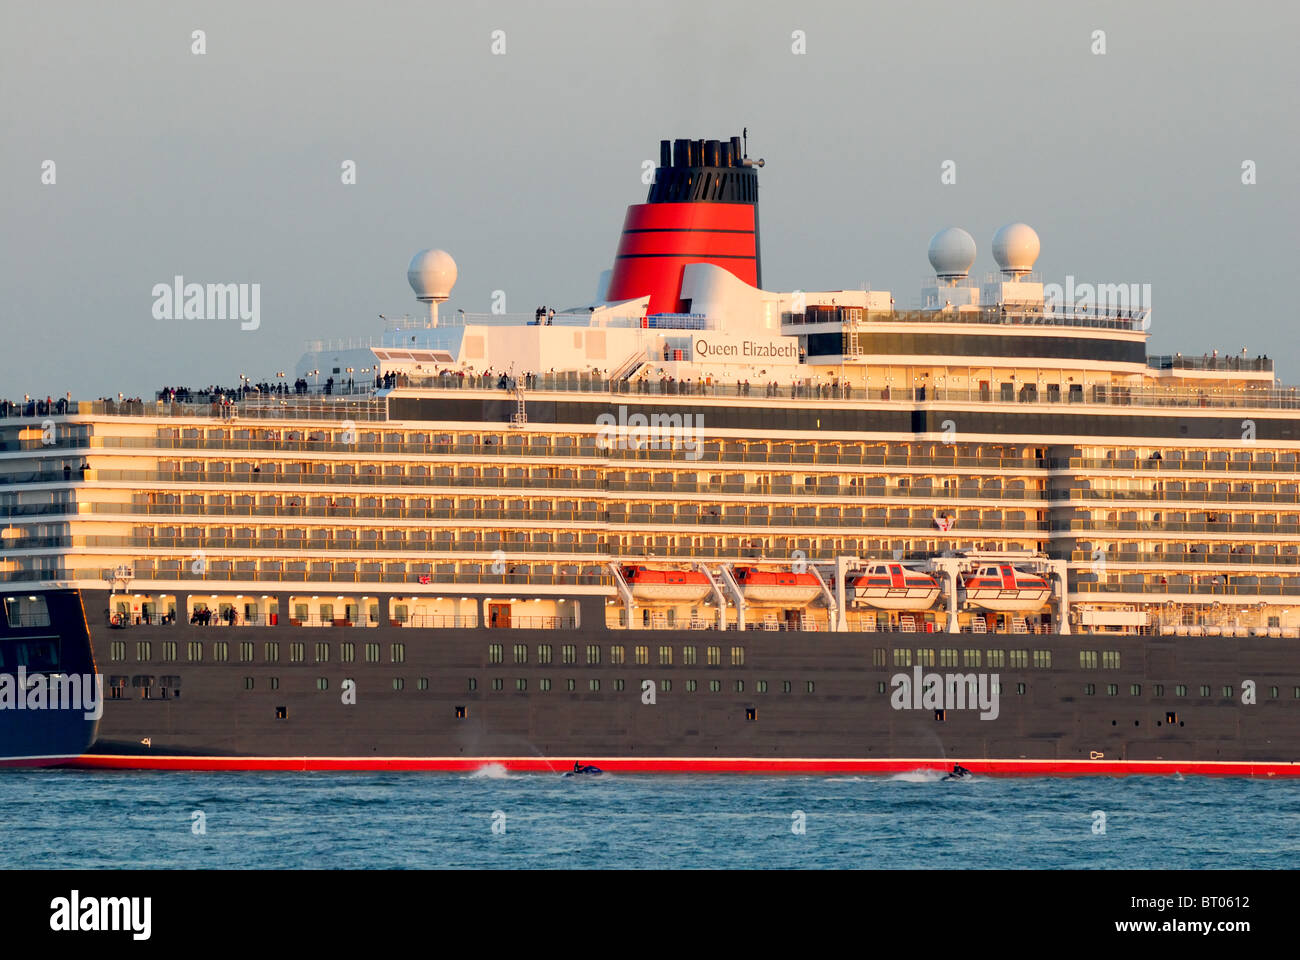 Liner 'Queen Elizabeth' sailing on her maiden voyage from Southampton water - Stock Image